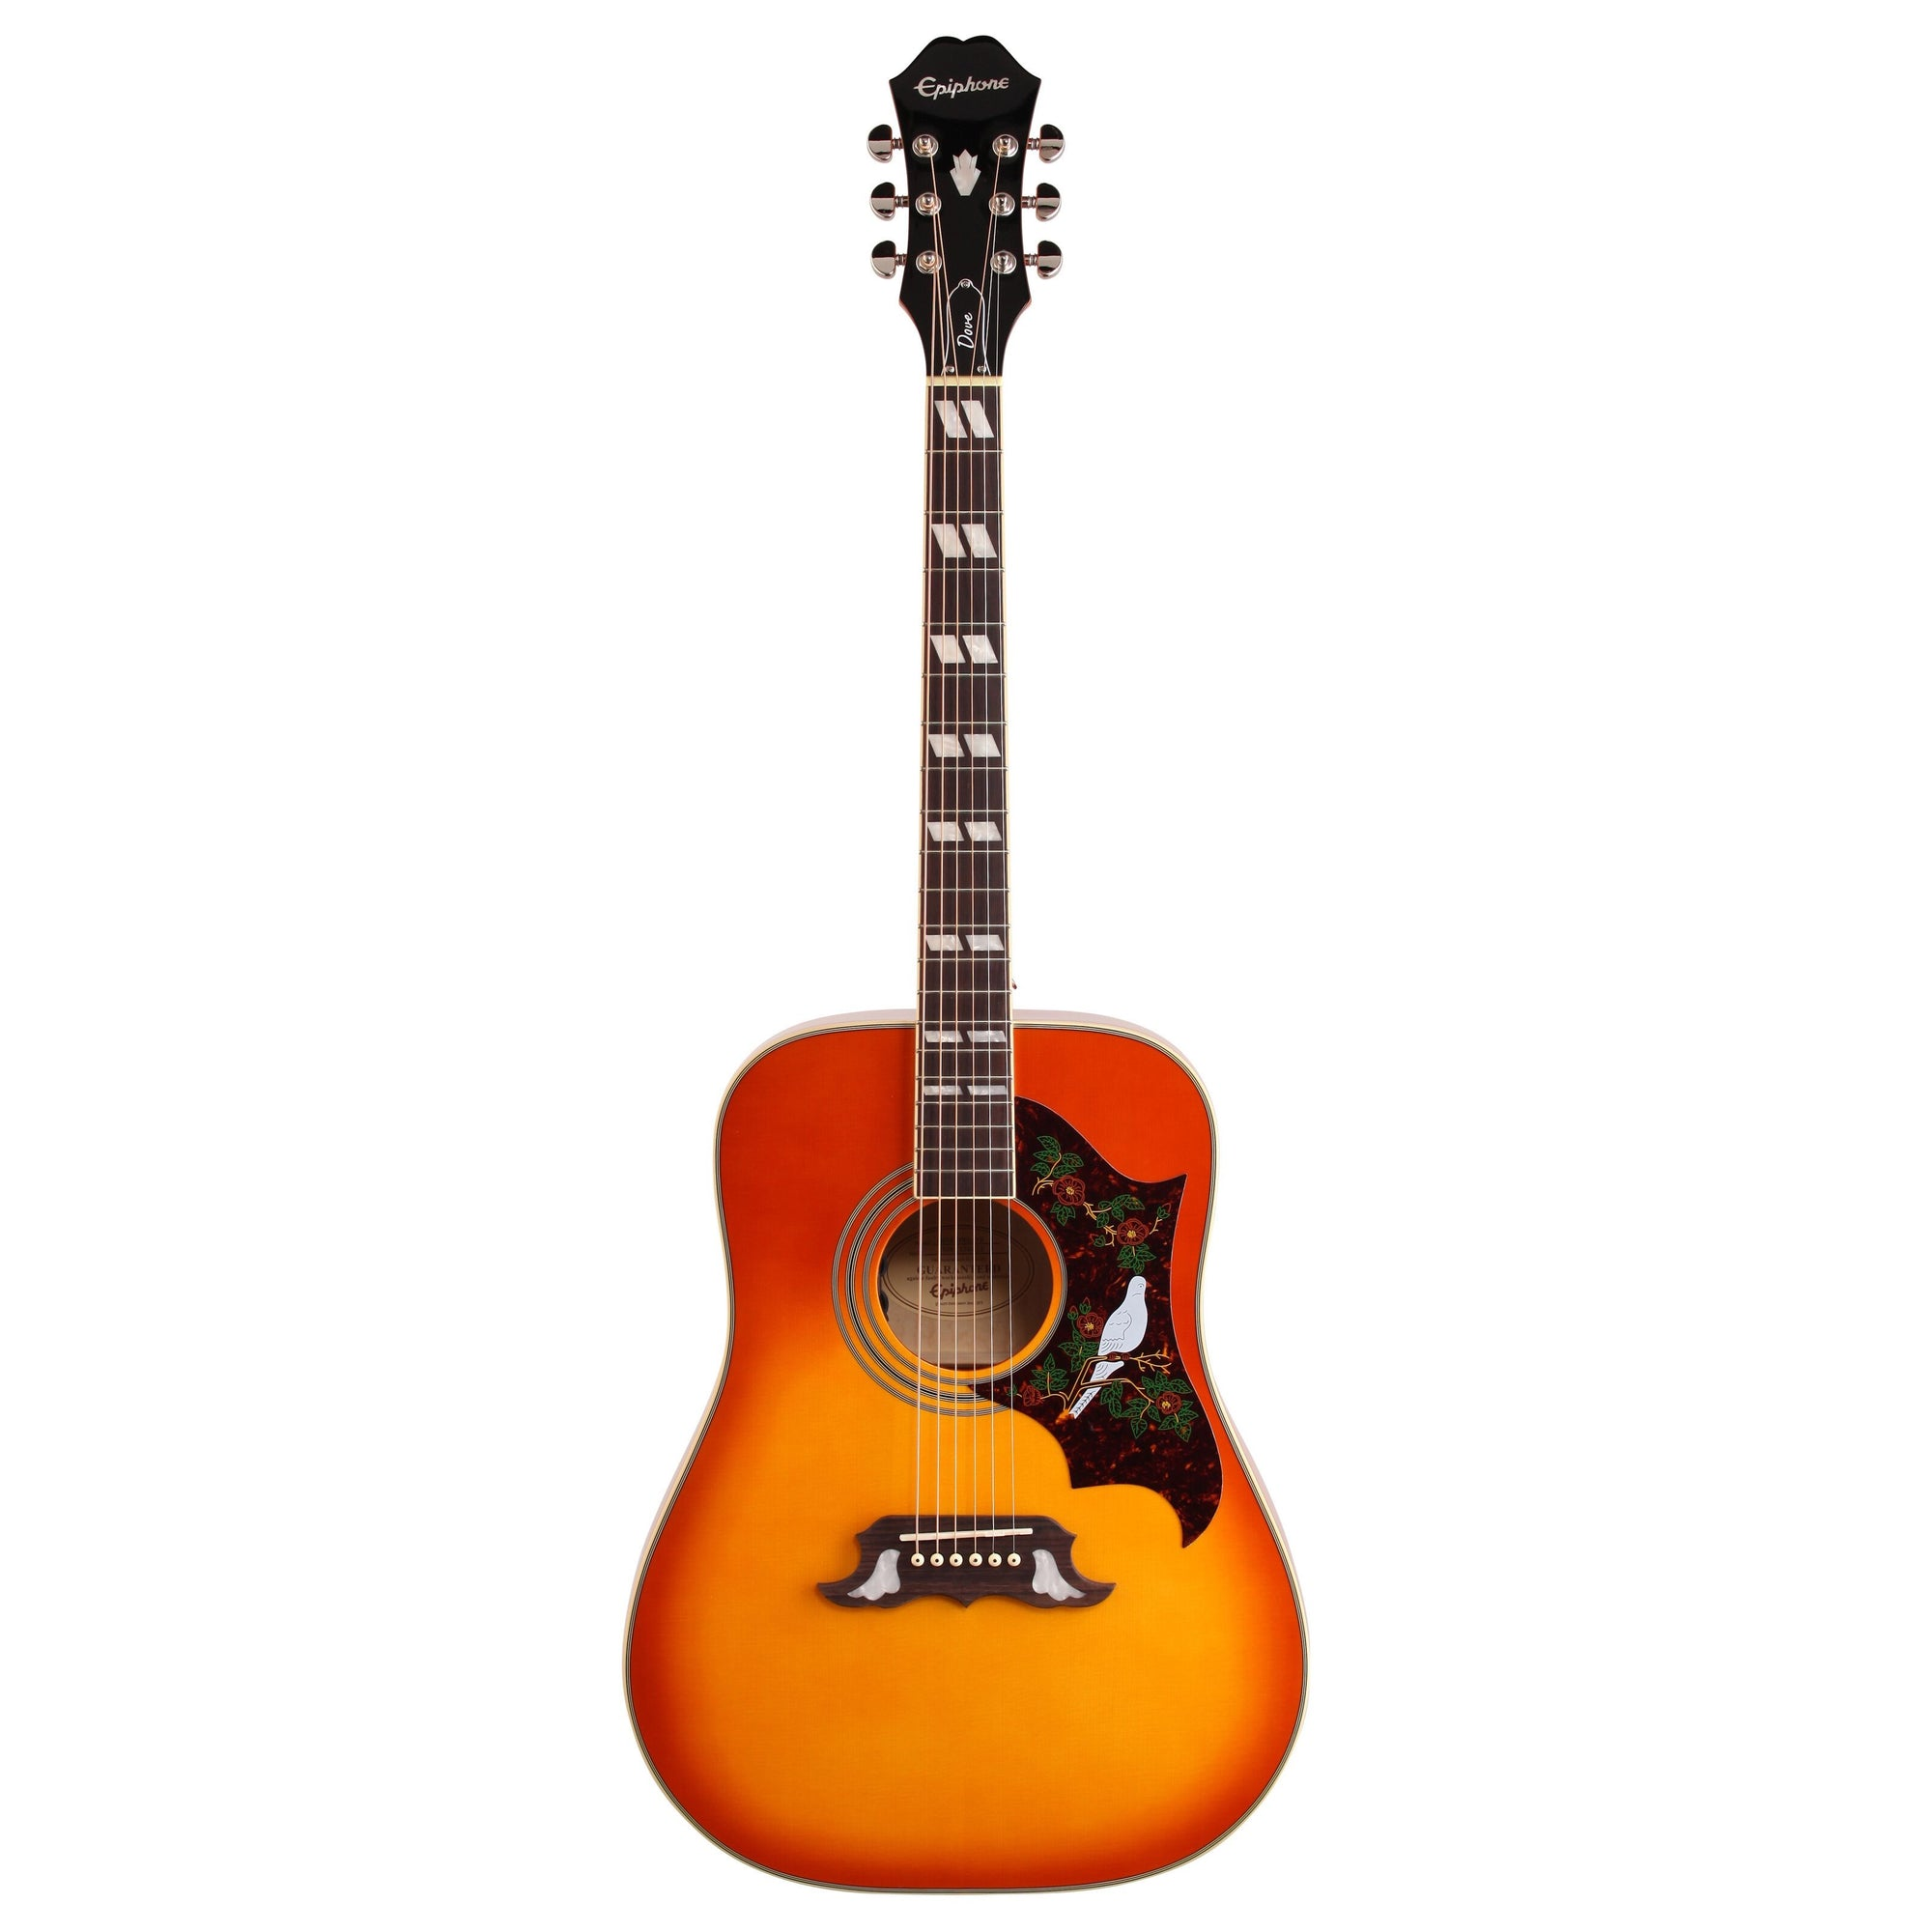 Epiphone Dove PRO Acoustic-Electric Guitar, Violinburst